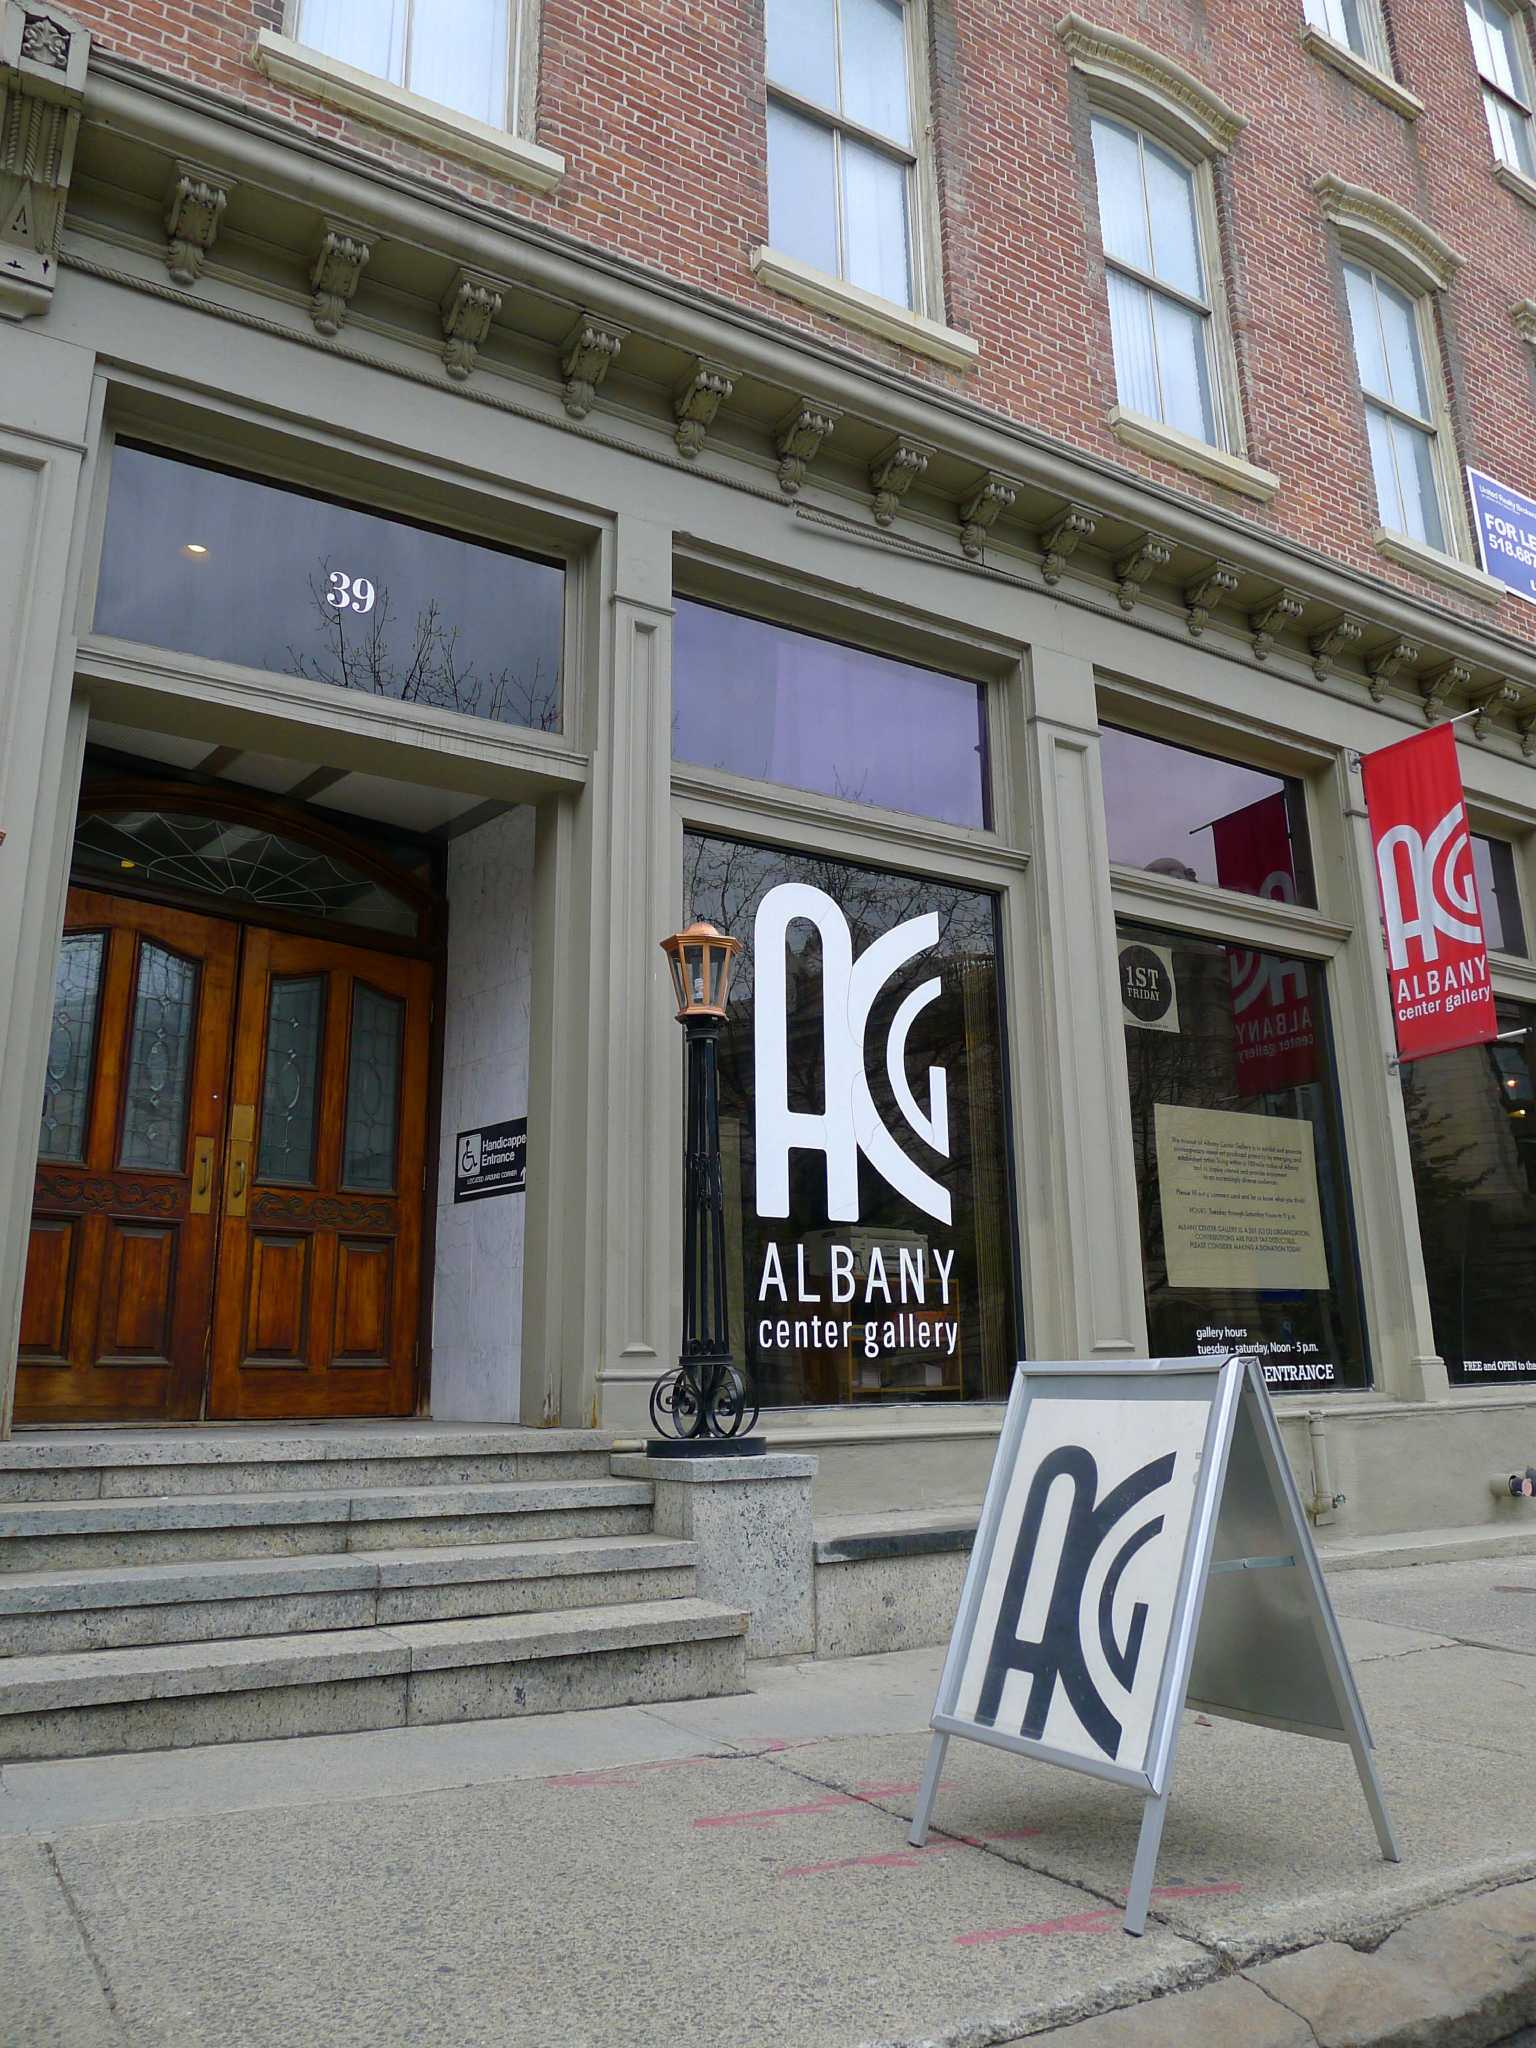 Albany center gallery hours Albany Symphony Orchestra - Official Site